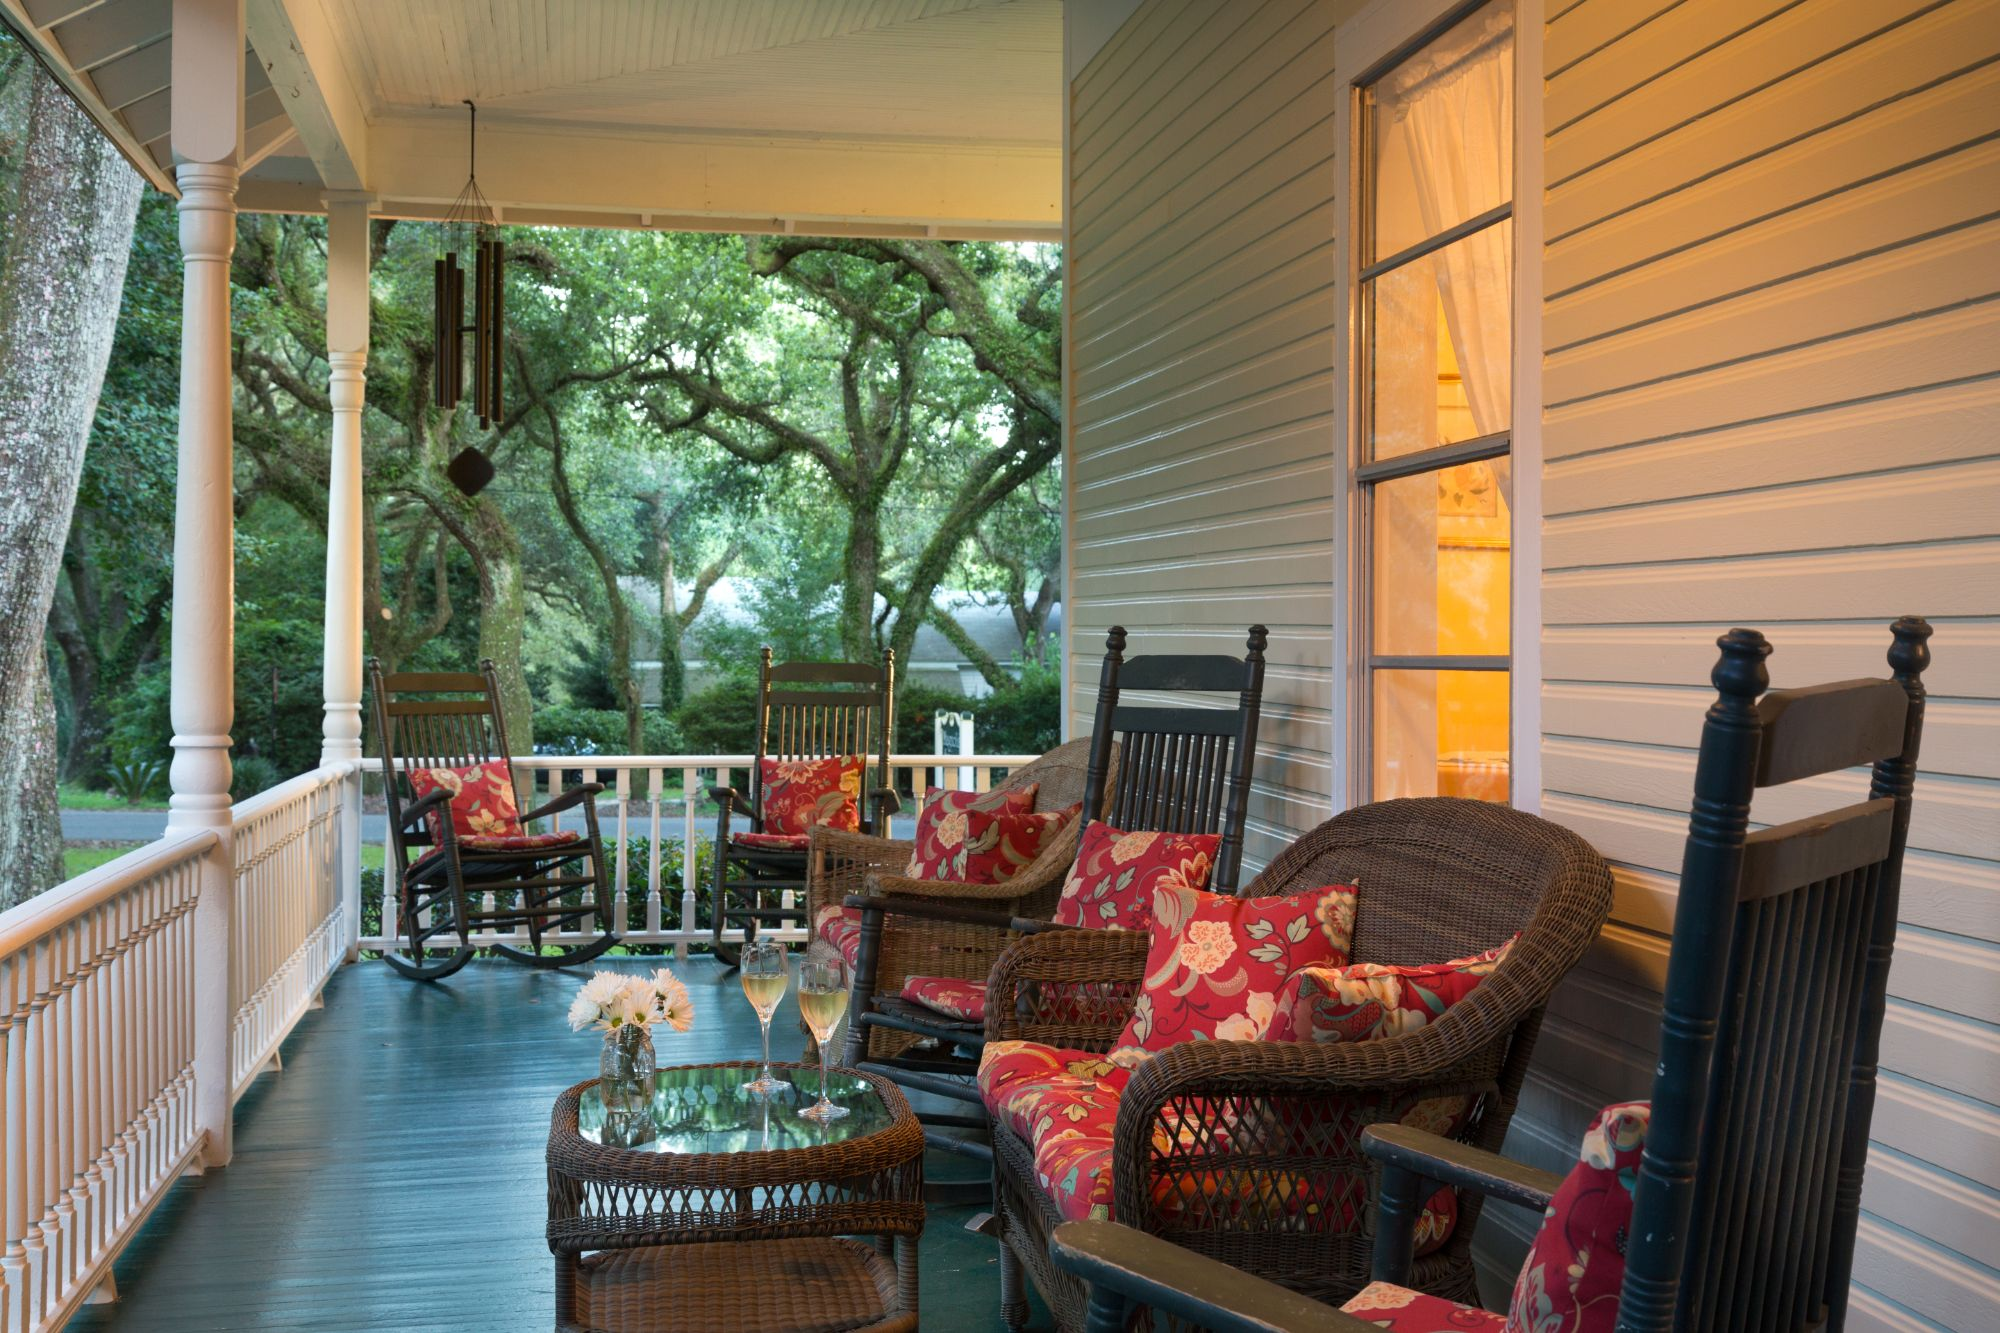 https://alabama-travel.s3.amazonaws.com/partners-uploads/photo/image/5ebda58943ec250008d8b156/4-magnolia-porch.jpg